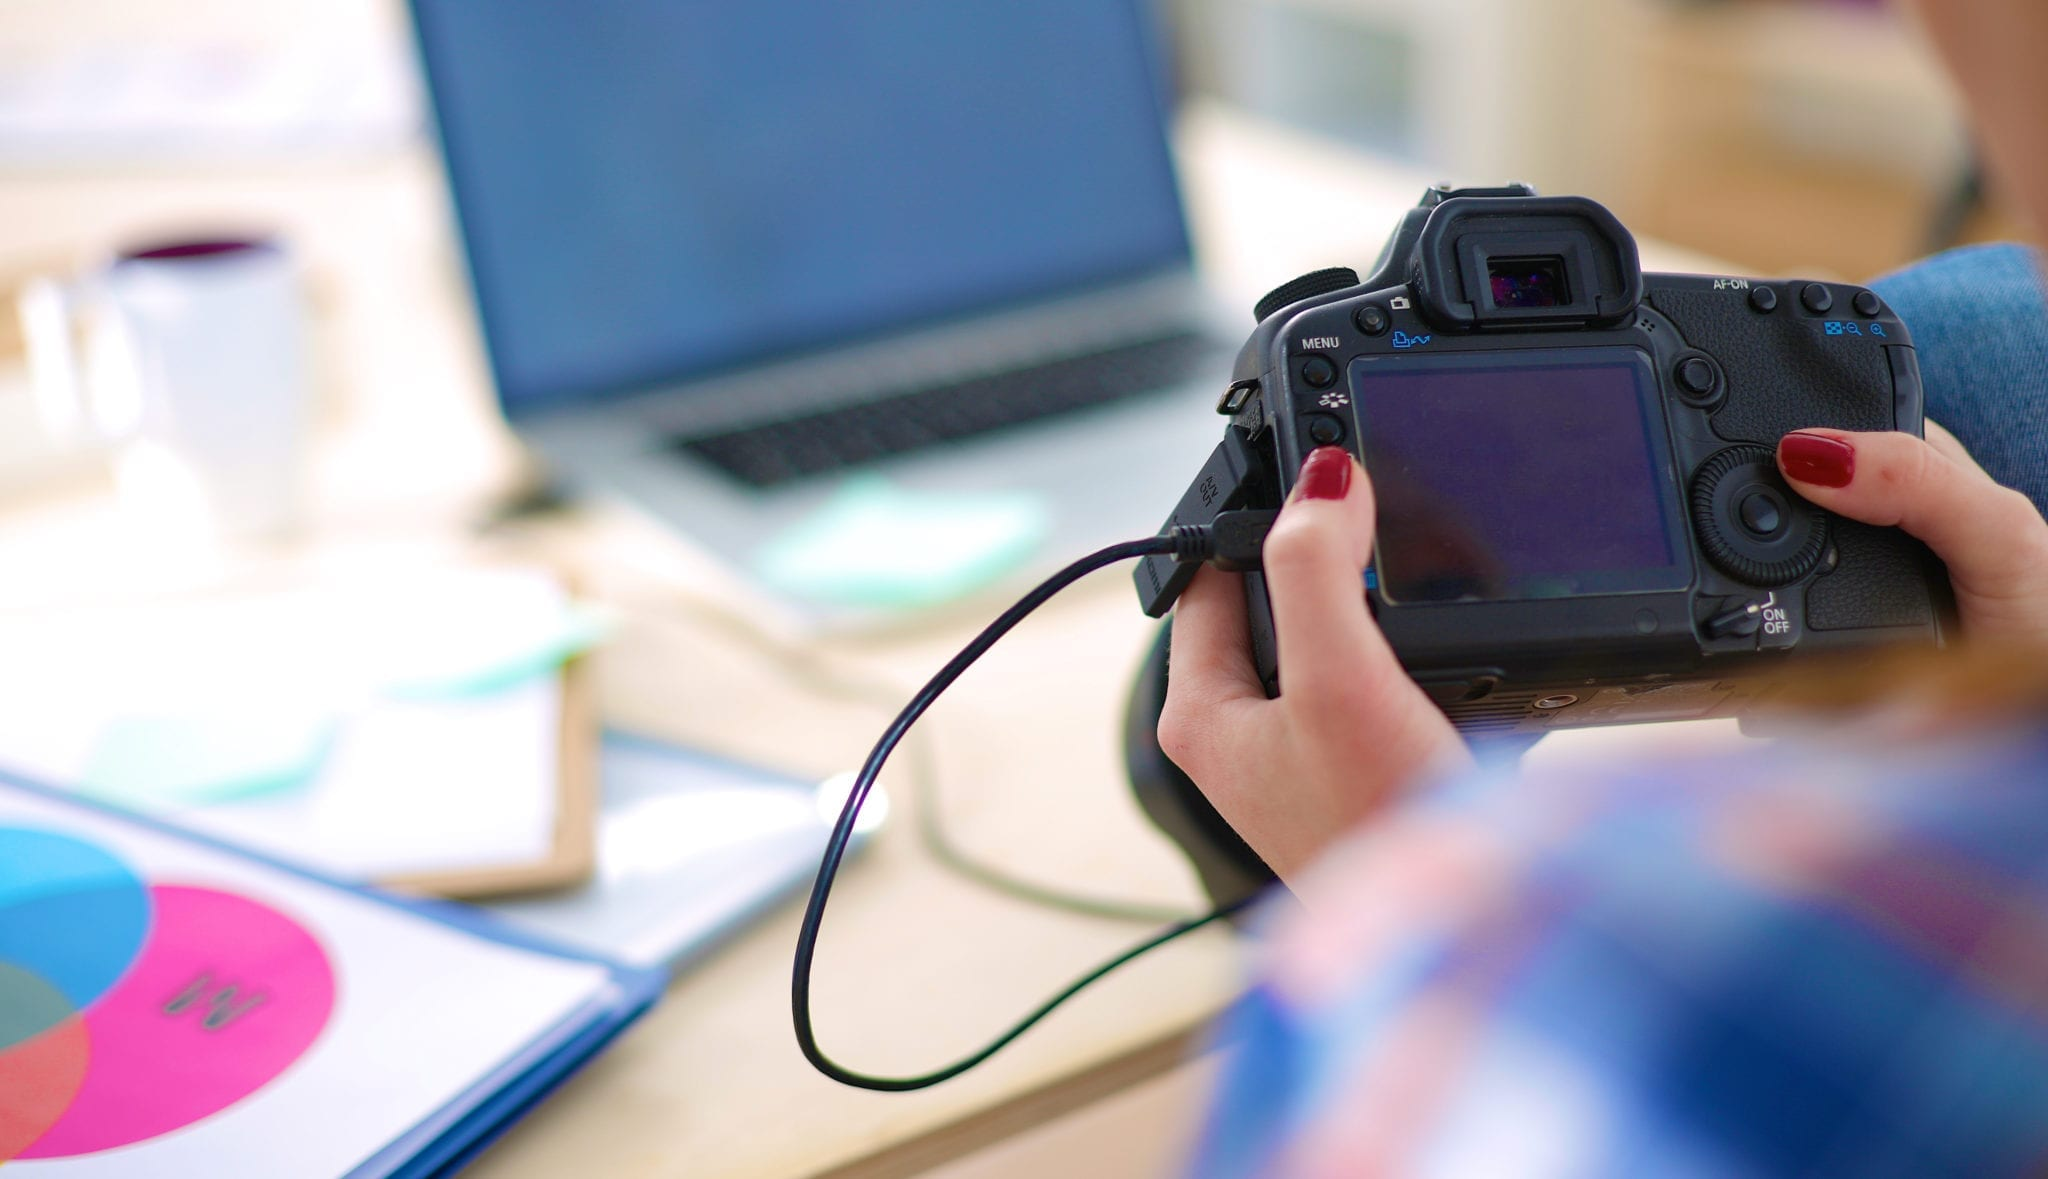 Photo of a camera being held over a desk with a laptop on it